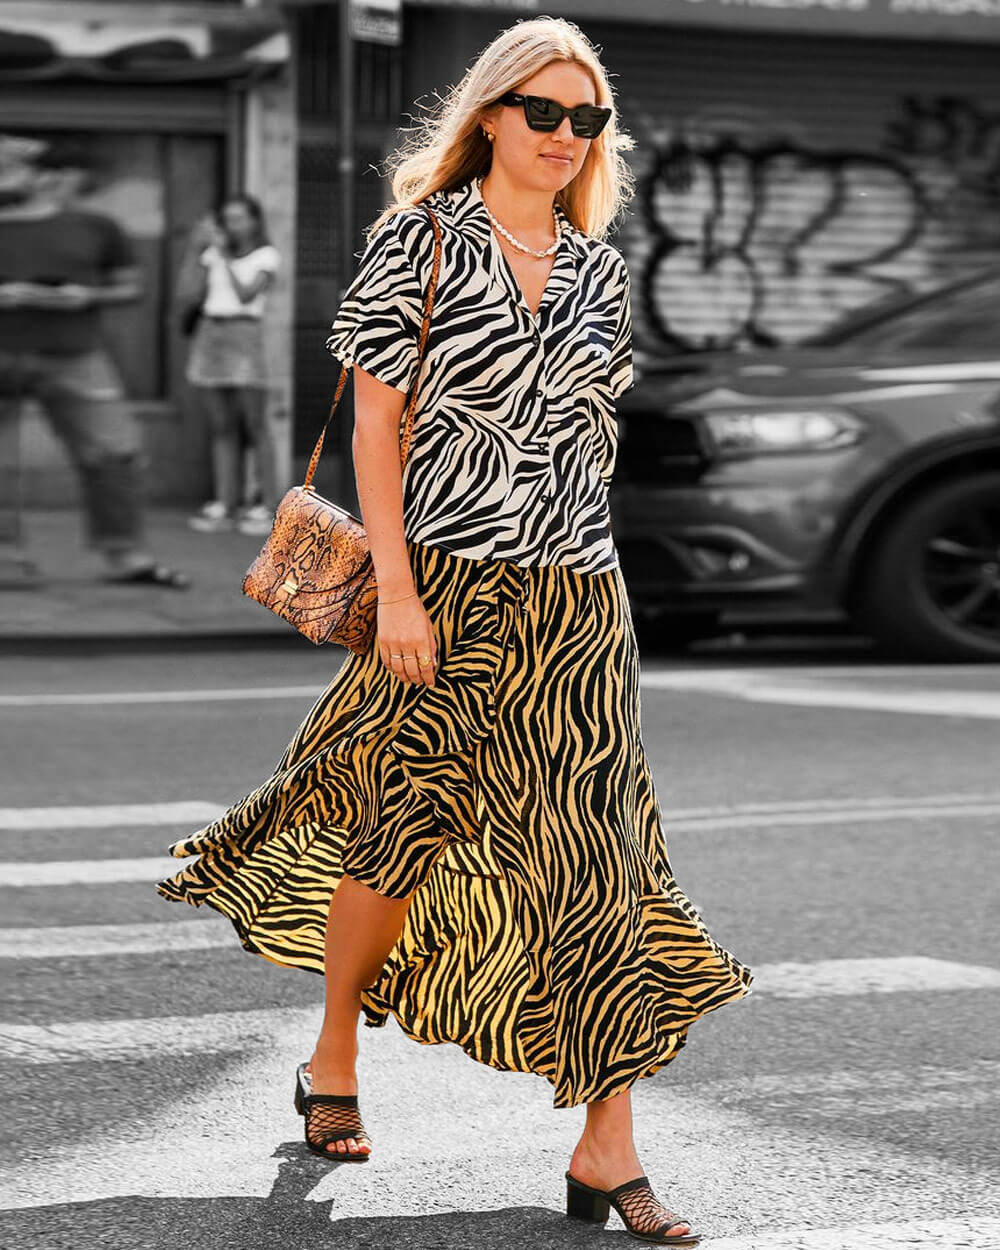 Tiger prints fashion trends of 2021